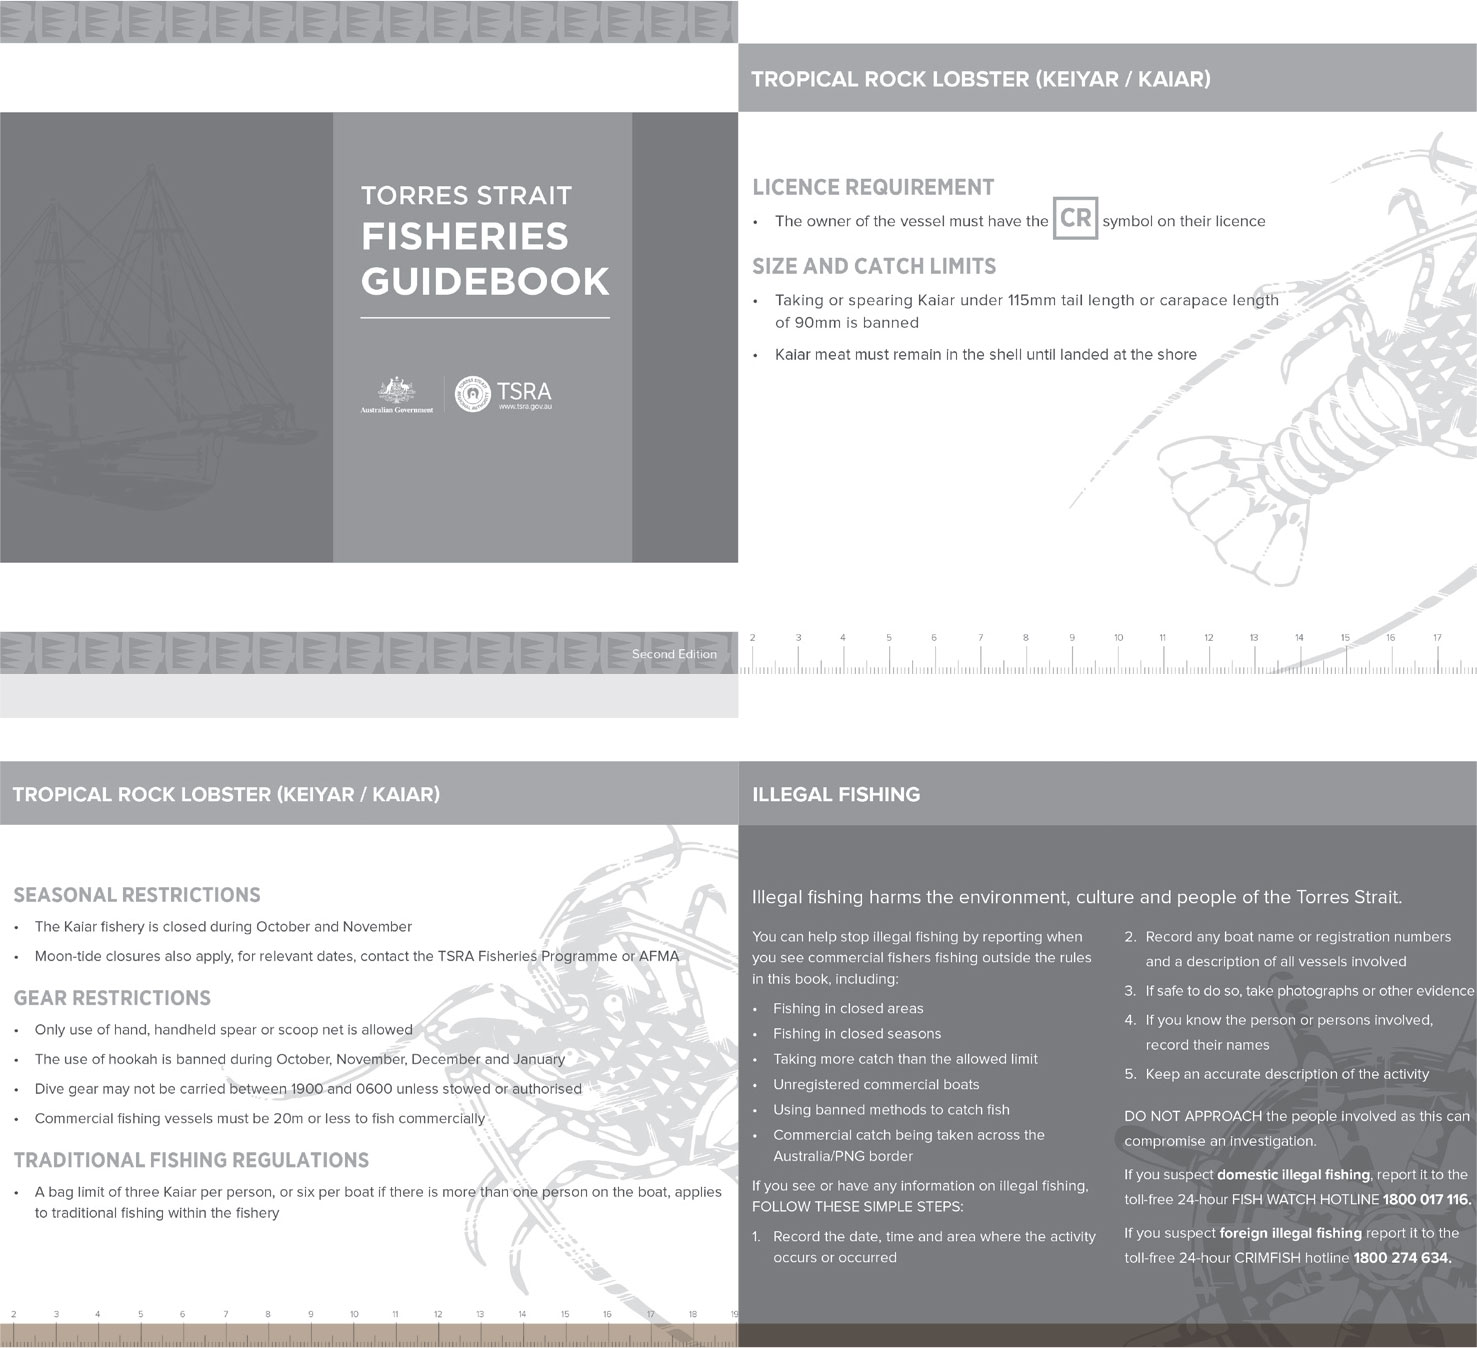 a photograph of THE TORRES STRAIT FISHERIES GUIDEBOOK-A ONE-STOP GUIDE TO THE ESSENTIAL INFORMATION FOR EACH OF THE COMMERCIAL SPECIES IN THE TORRES STRAIT.